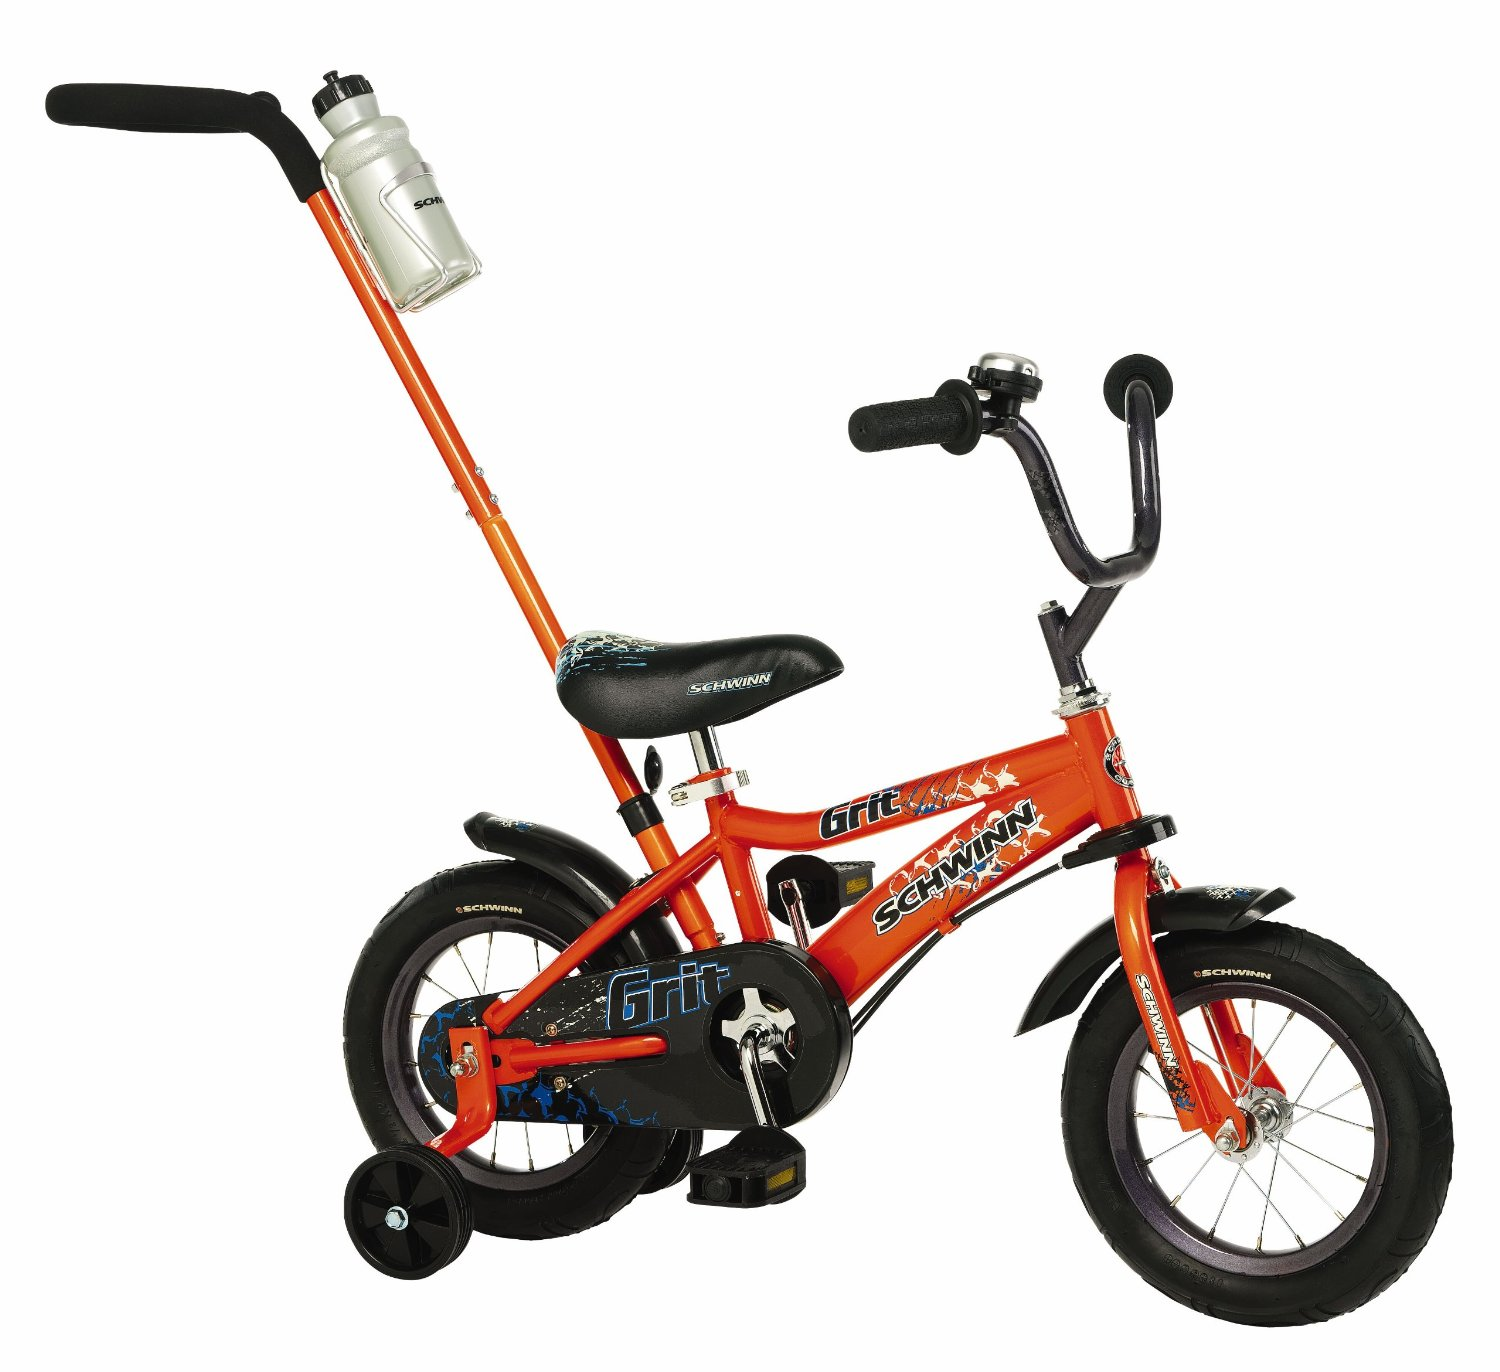 Cheap Schwinn Boys Bike Find Schwinn Boys Bike Deals On Line At